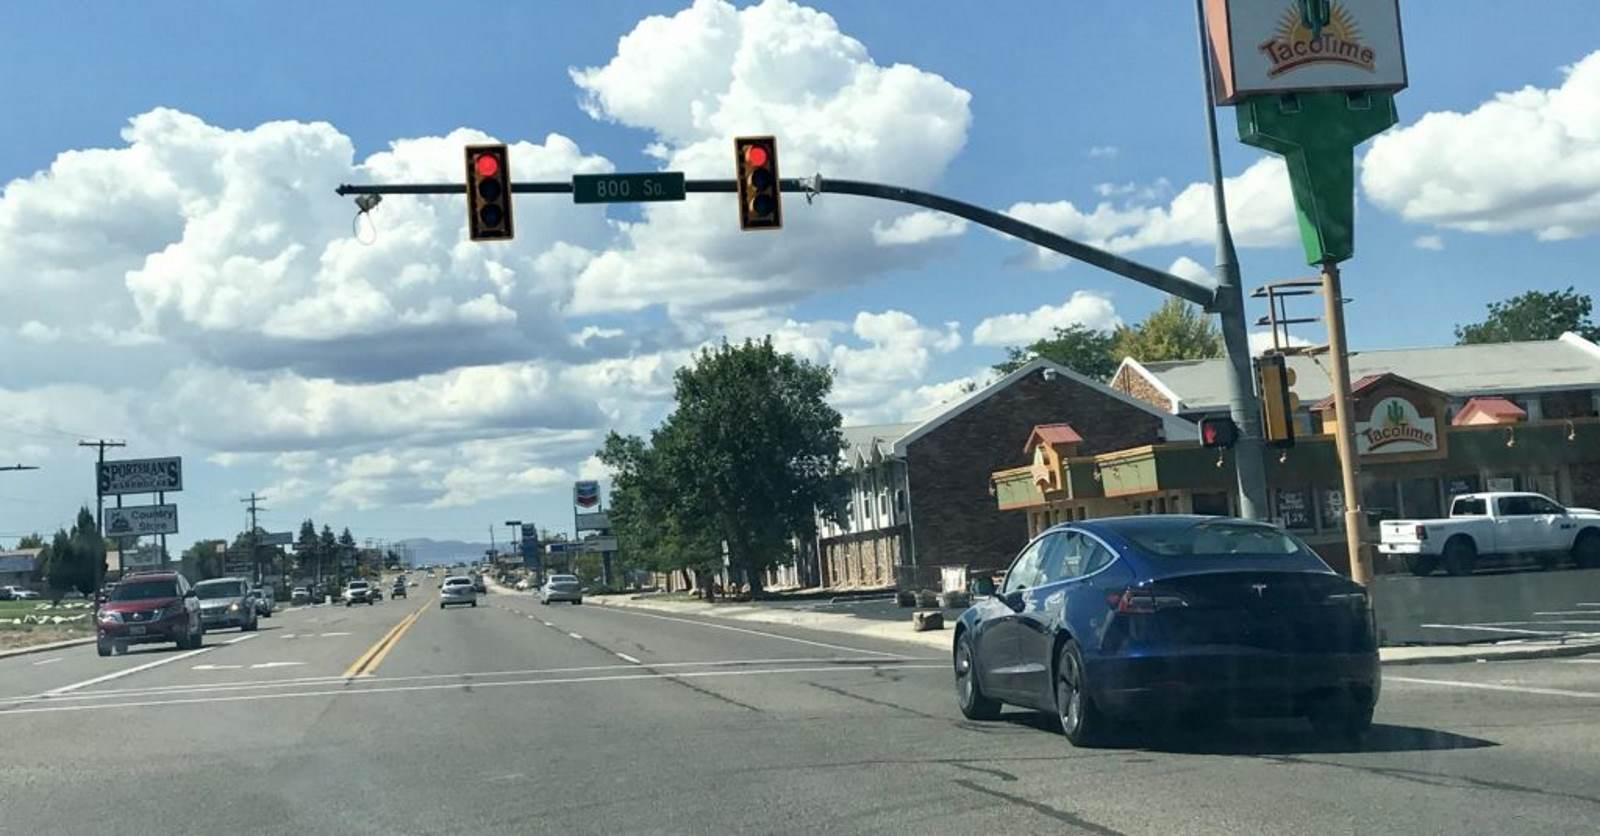 How Tesla detects traffic lights and stops automatically